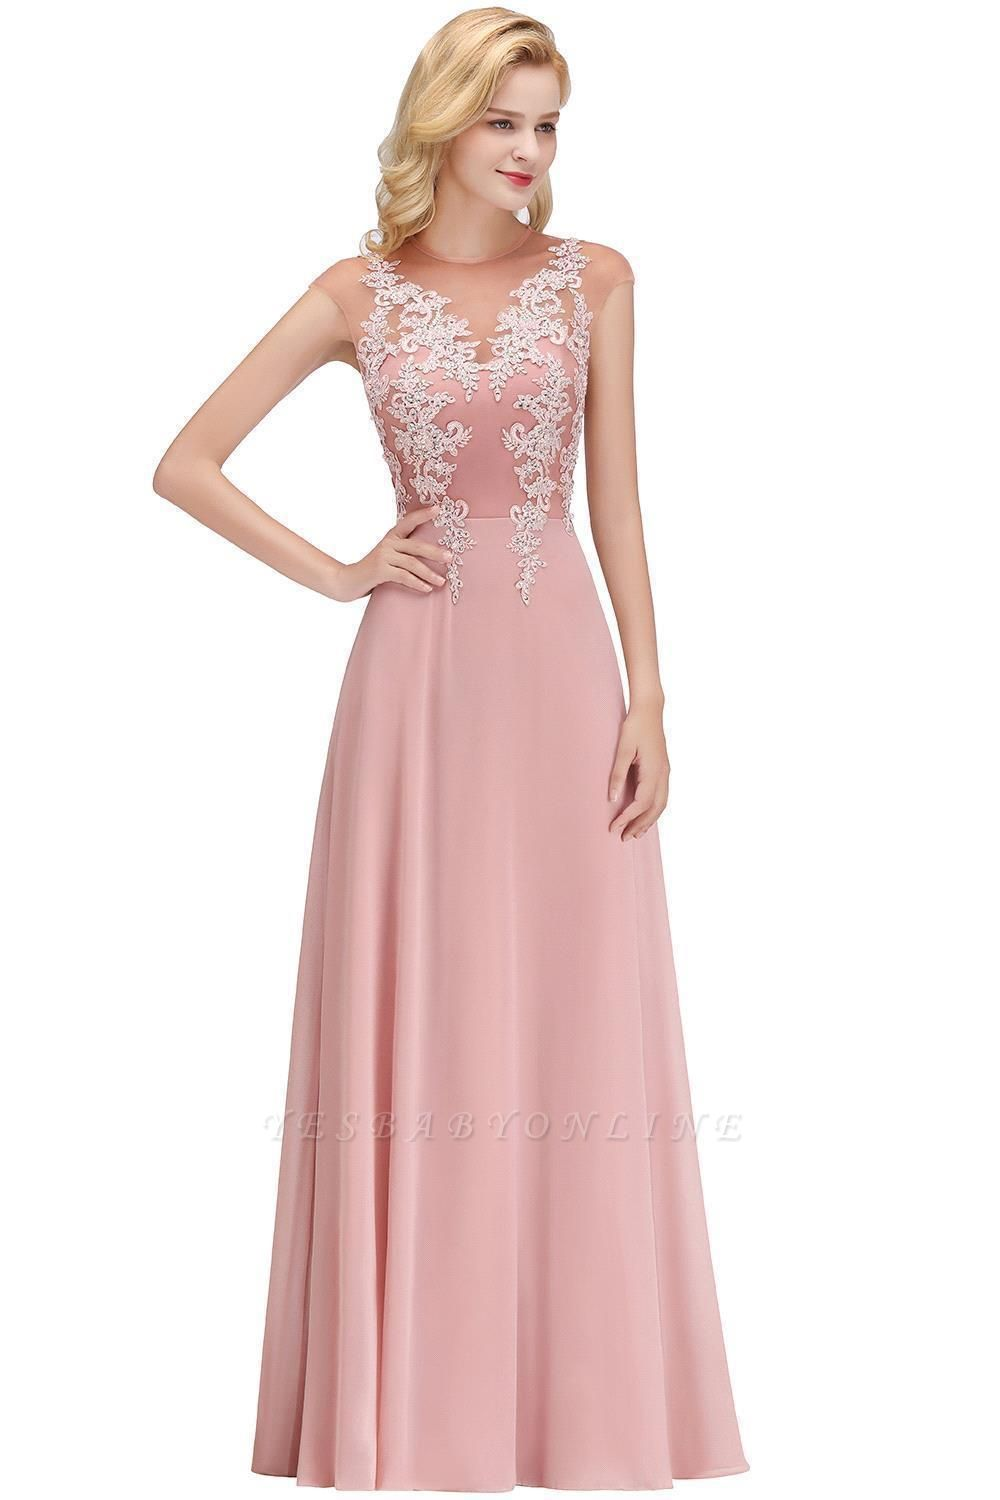 Cheap A-line Jewel Sleeveless Chiffon Tulle Lace Bridesmaid Dress in Stock